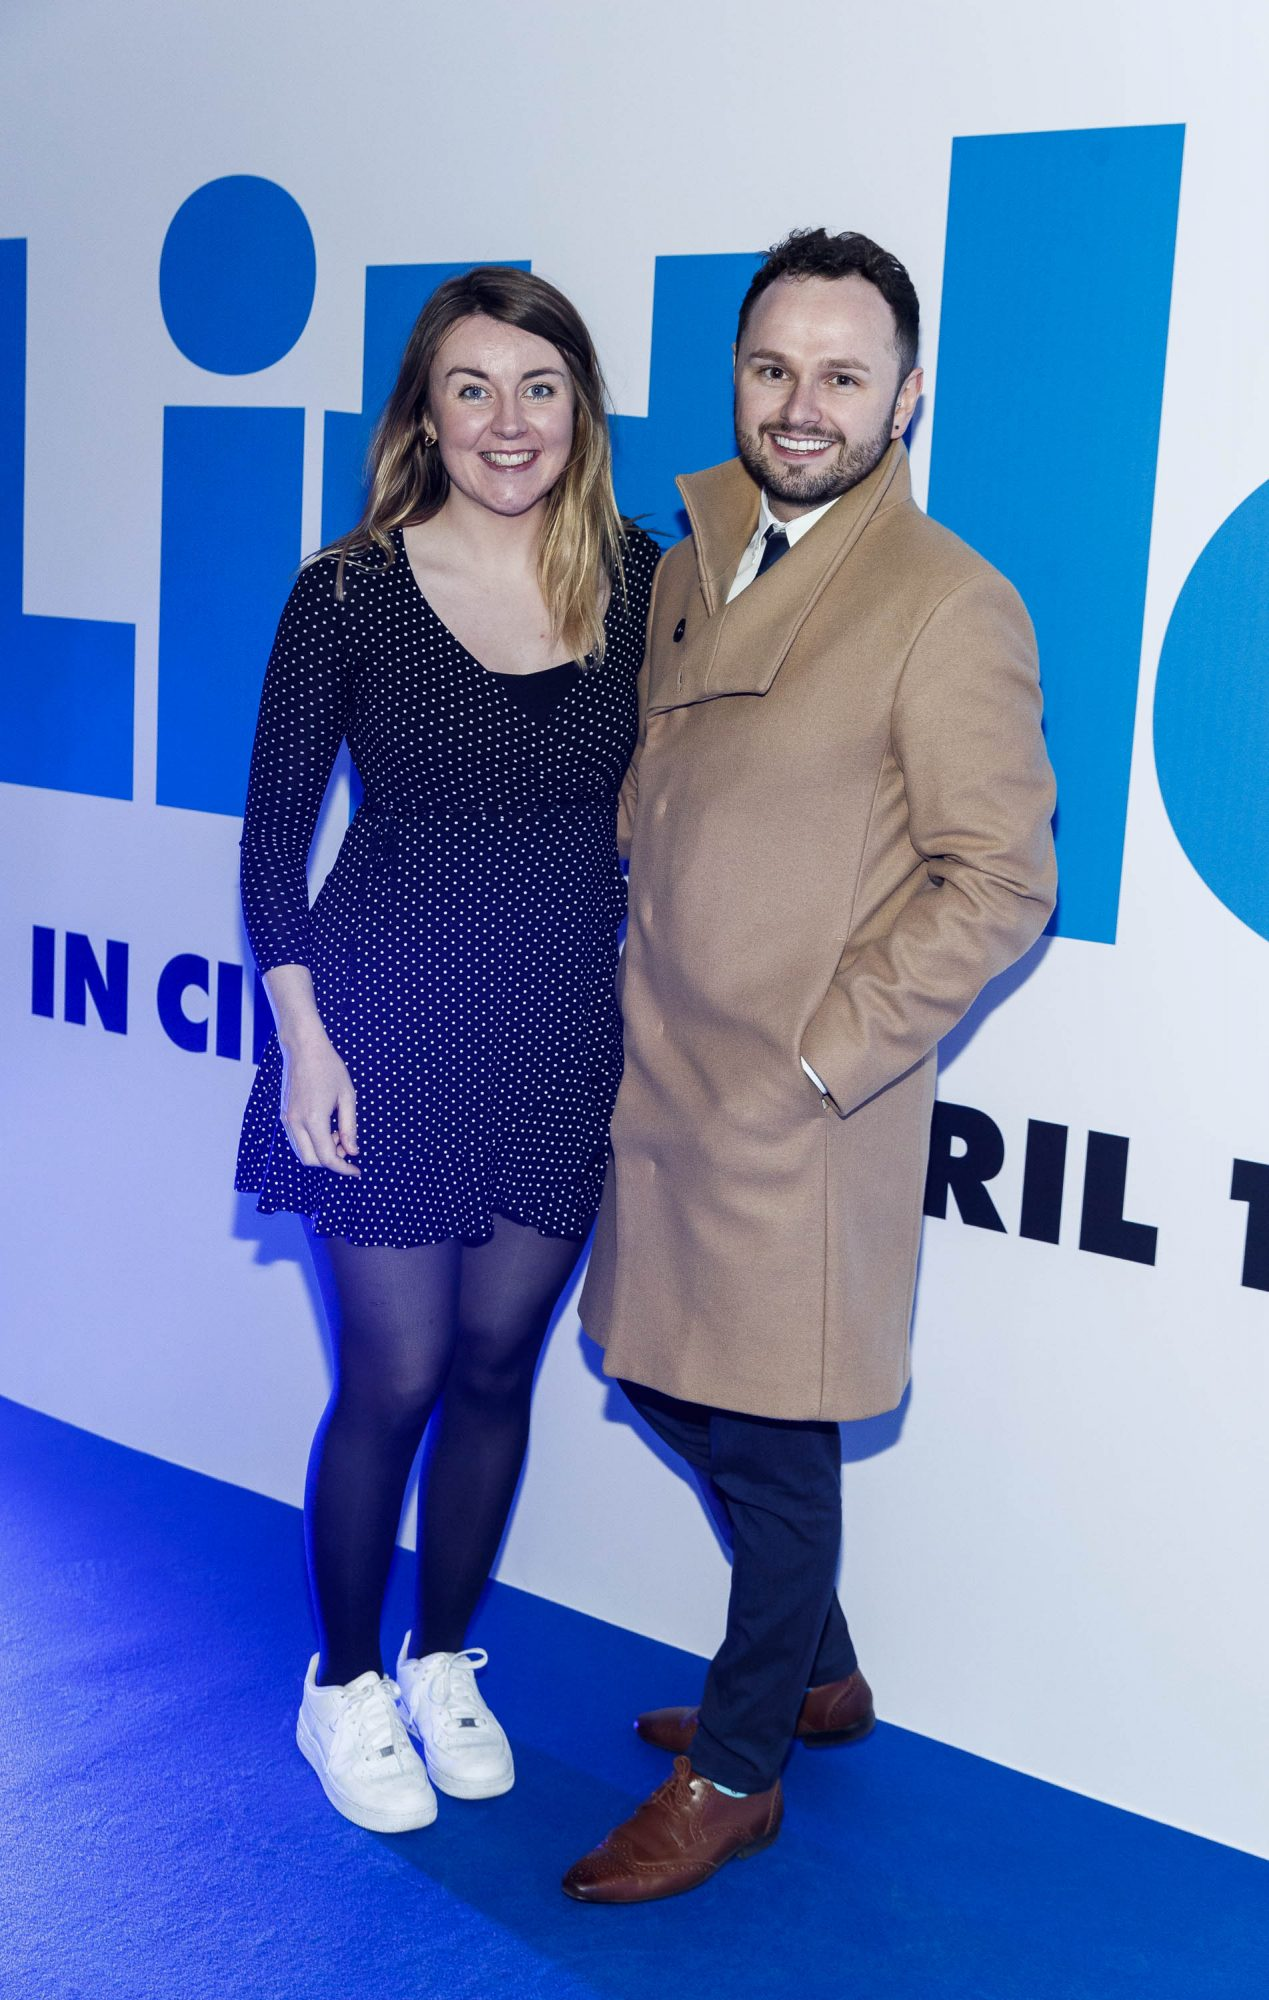 Sarah Moore and Karl Dawson pictured at a special preview screening of Little at Odeon Point Square, Dublin. Little, starring Girls Trip Regina Hall hits cinemas across Ireland this Friday April 12th. Picture Andres Poveda